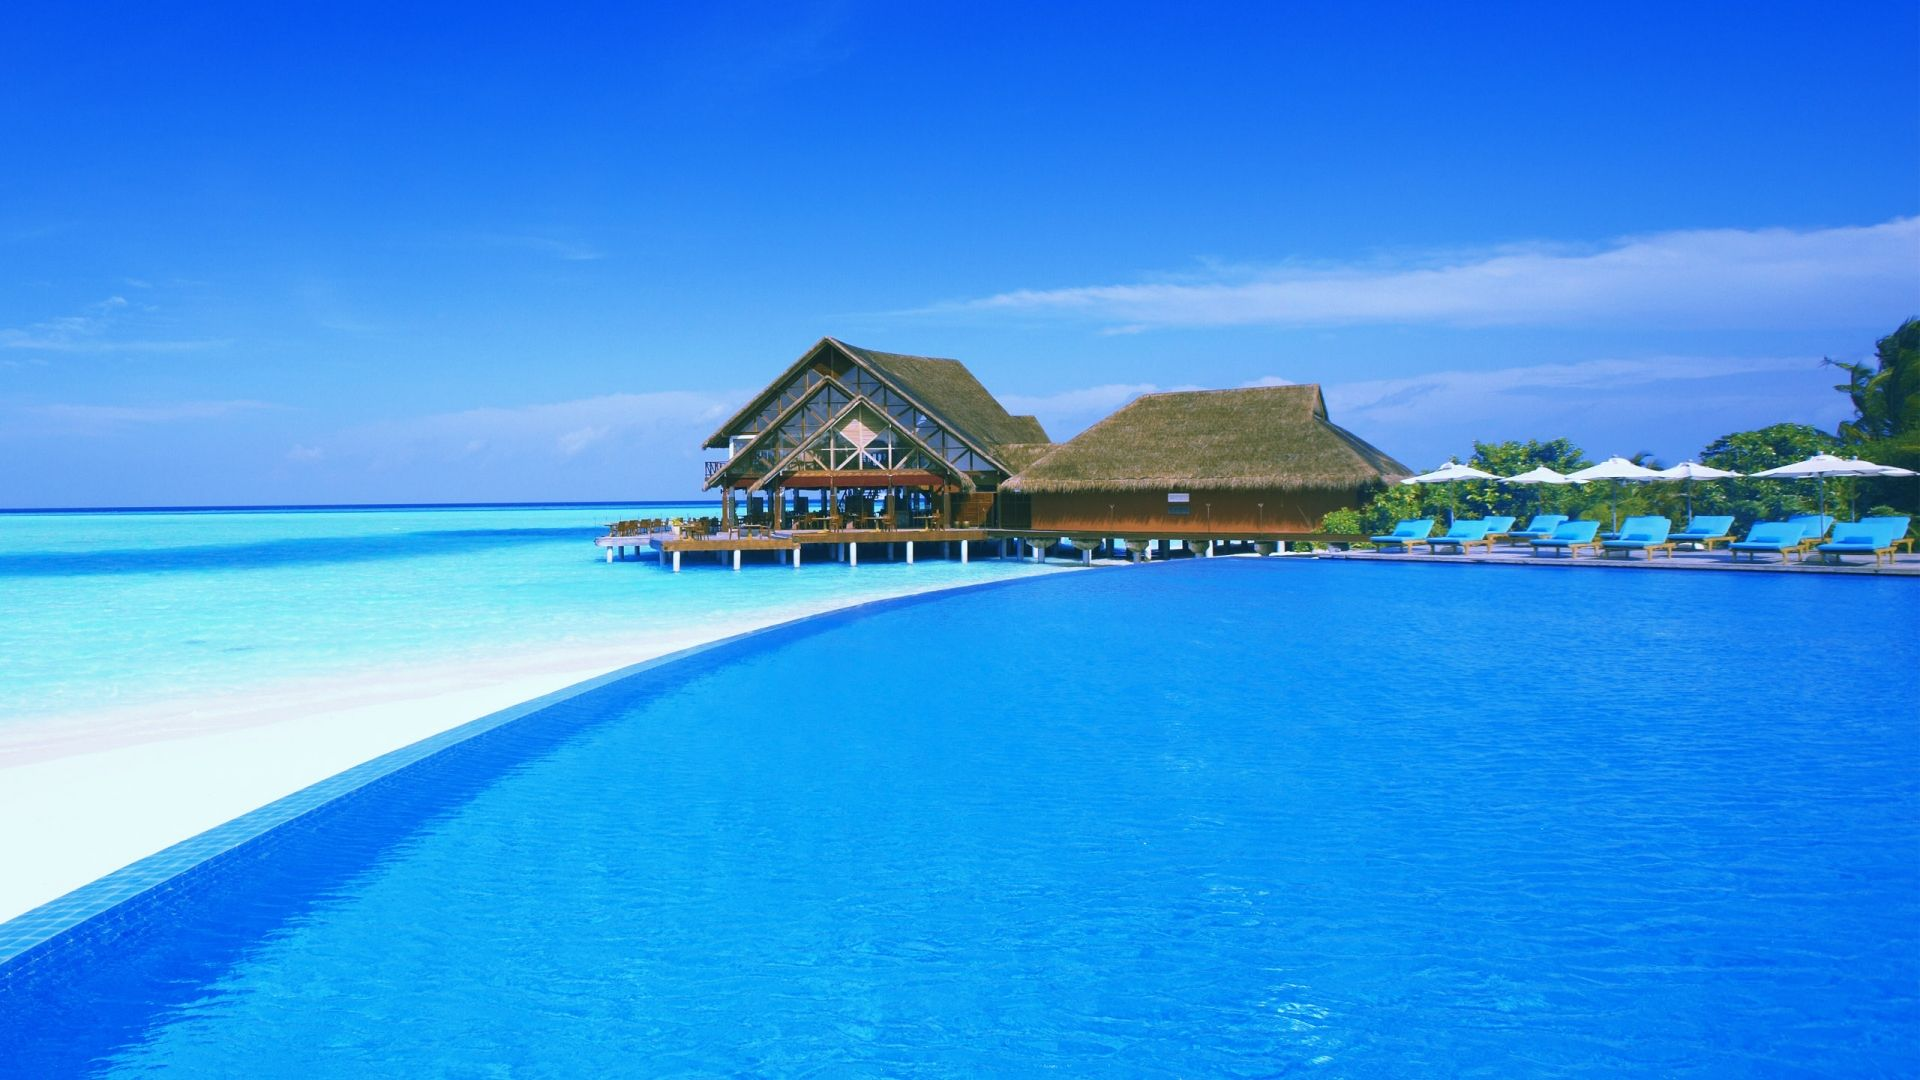 Where Is The Best Place To Stay In Bahamas